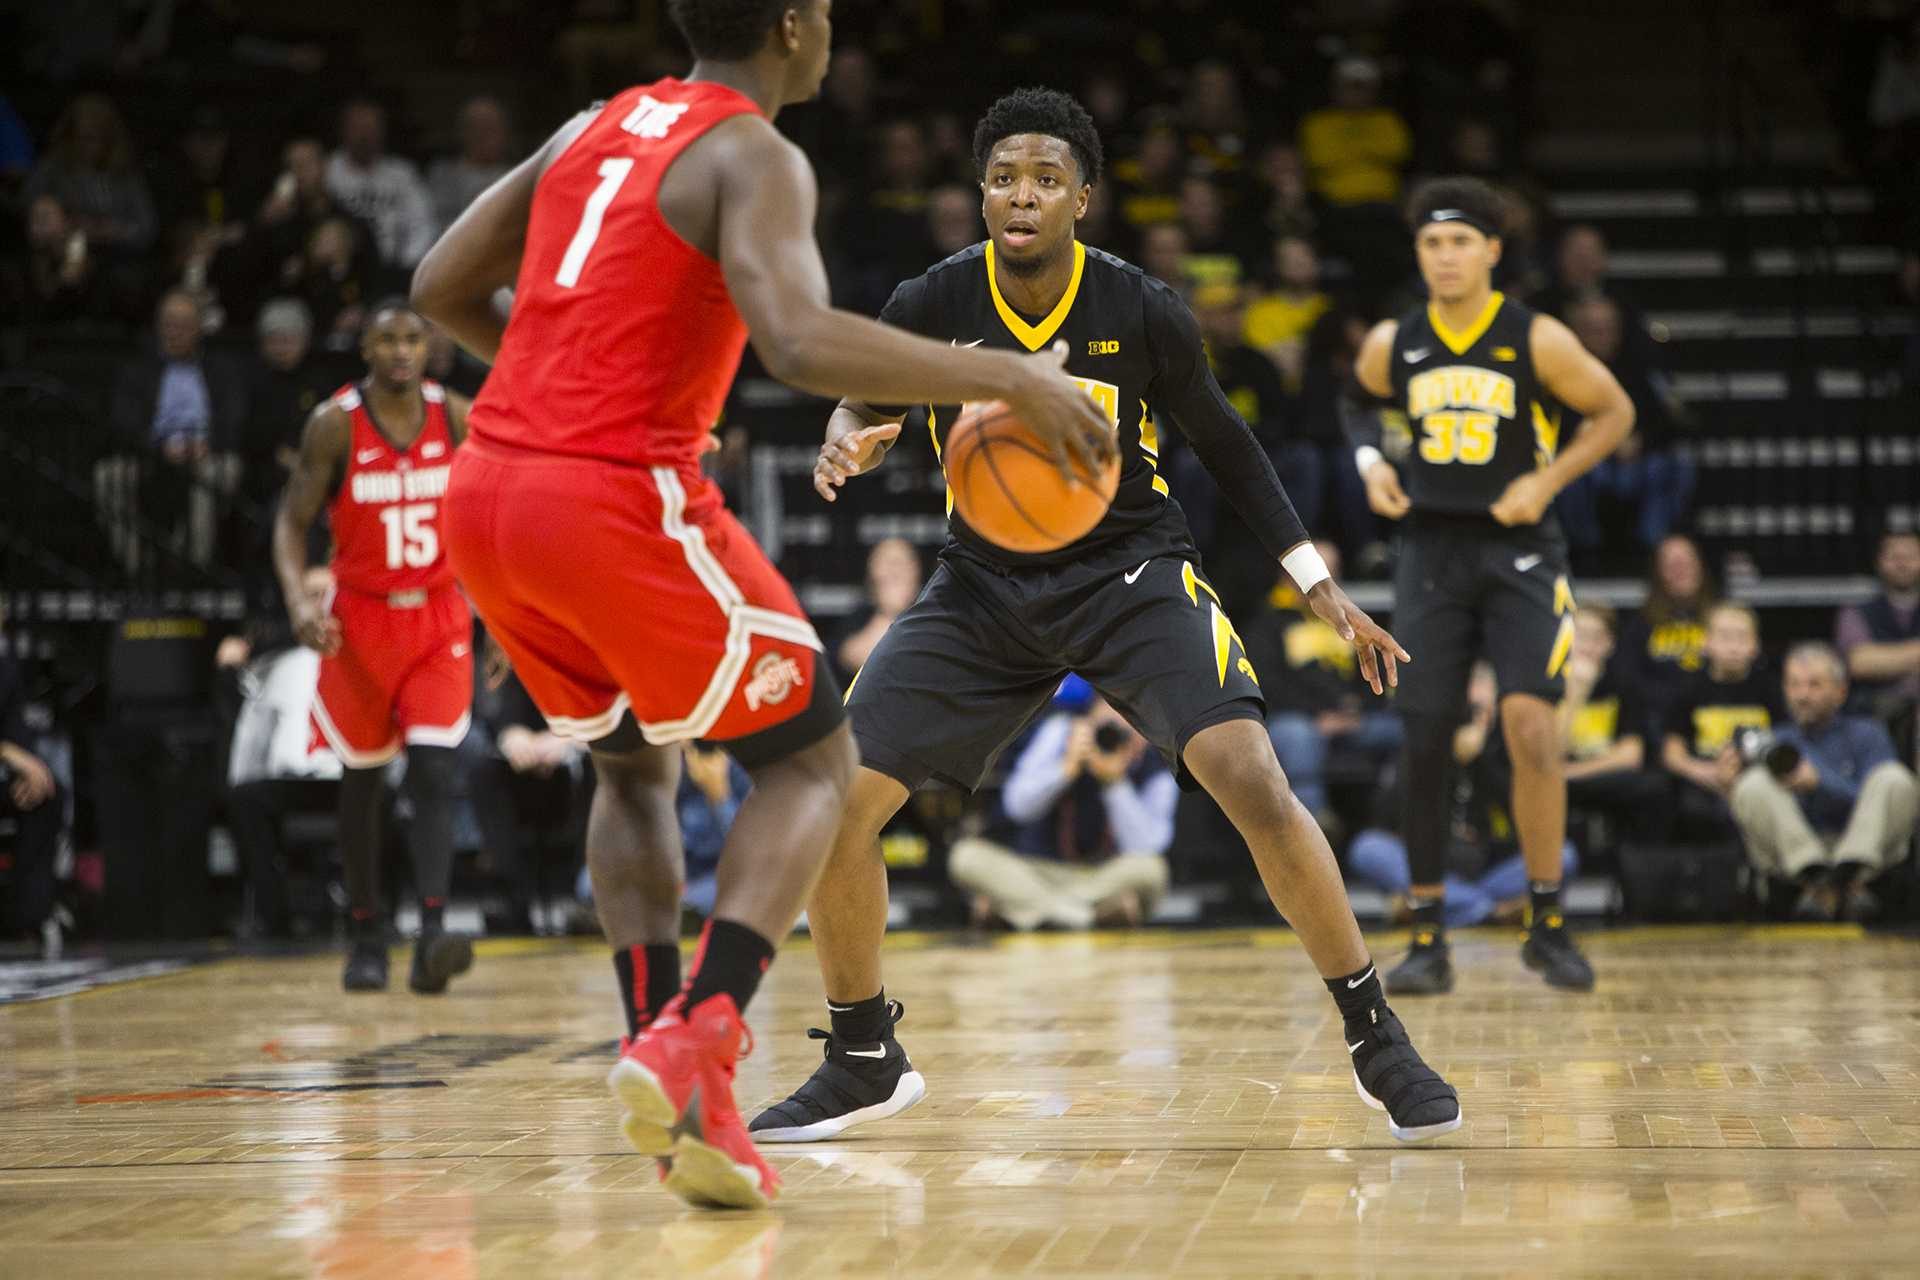 Iowa still searching for first Big Ten win after loss to Maryland